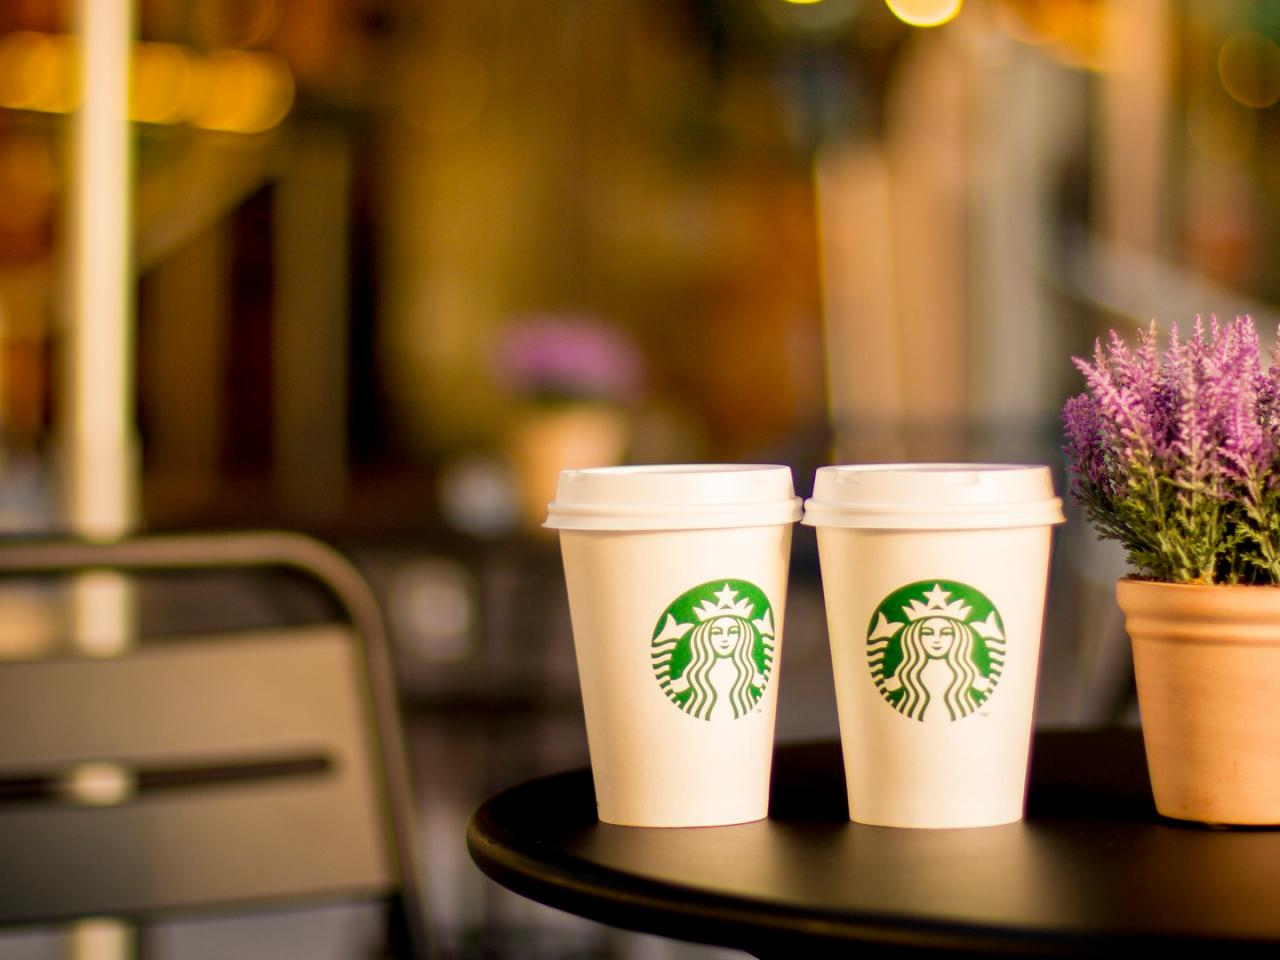 Cute Coffee Cups Wallpapers Starbucks Pictures In Hd With Two Cups On Table Hd